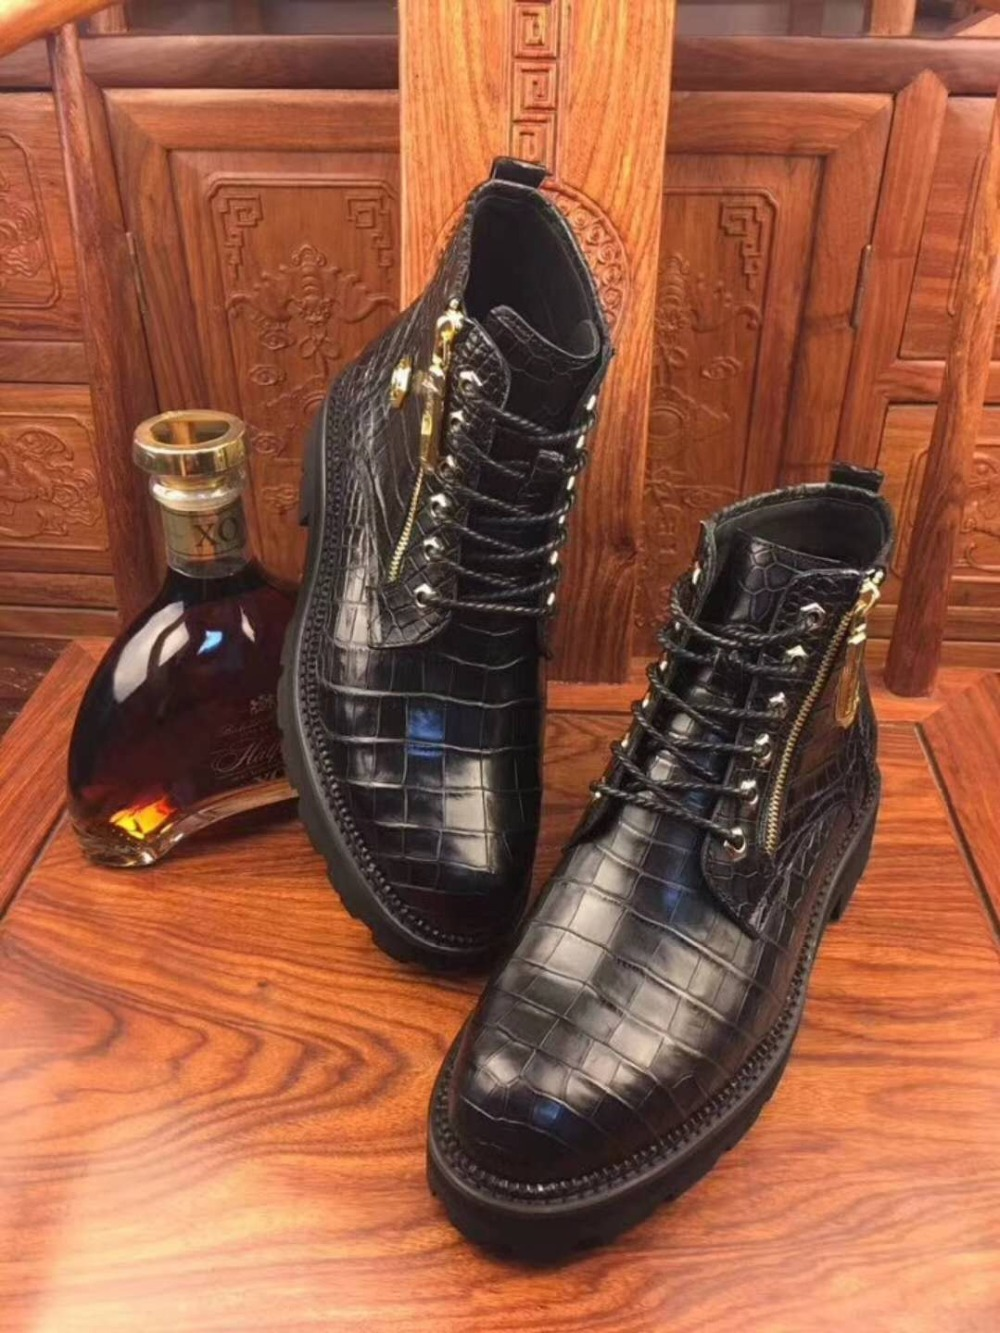 Genuine real genuine crocodil belly skin men winter shoe middle boots with cow skin lining and fur inside black color zip close